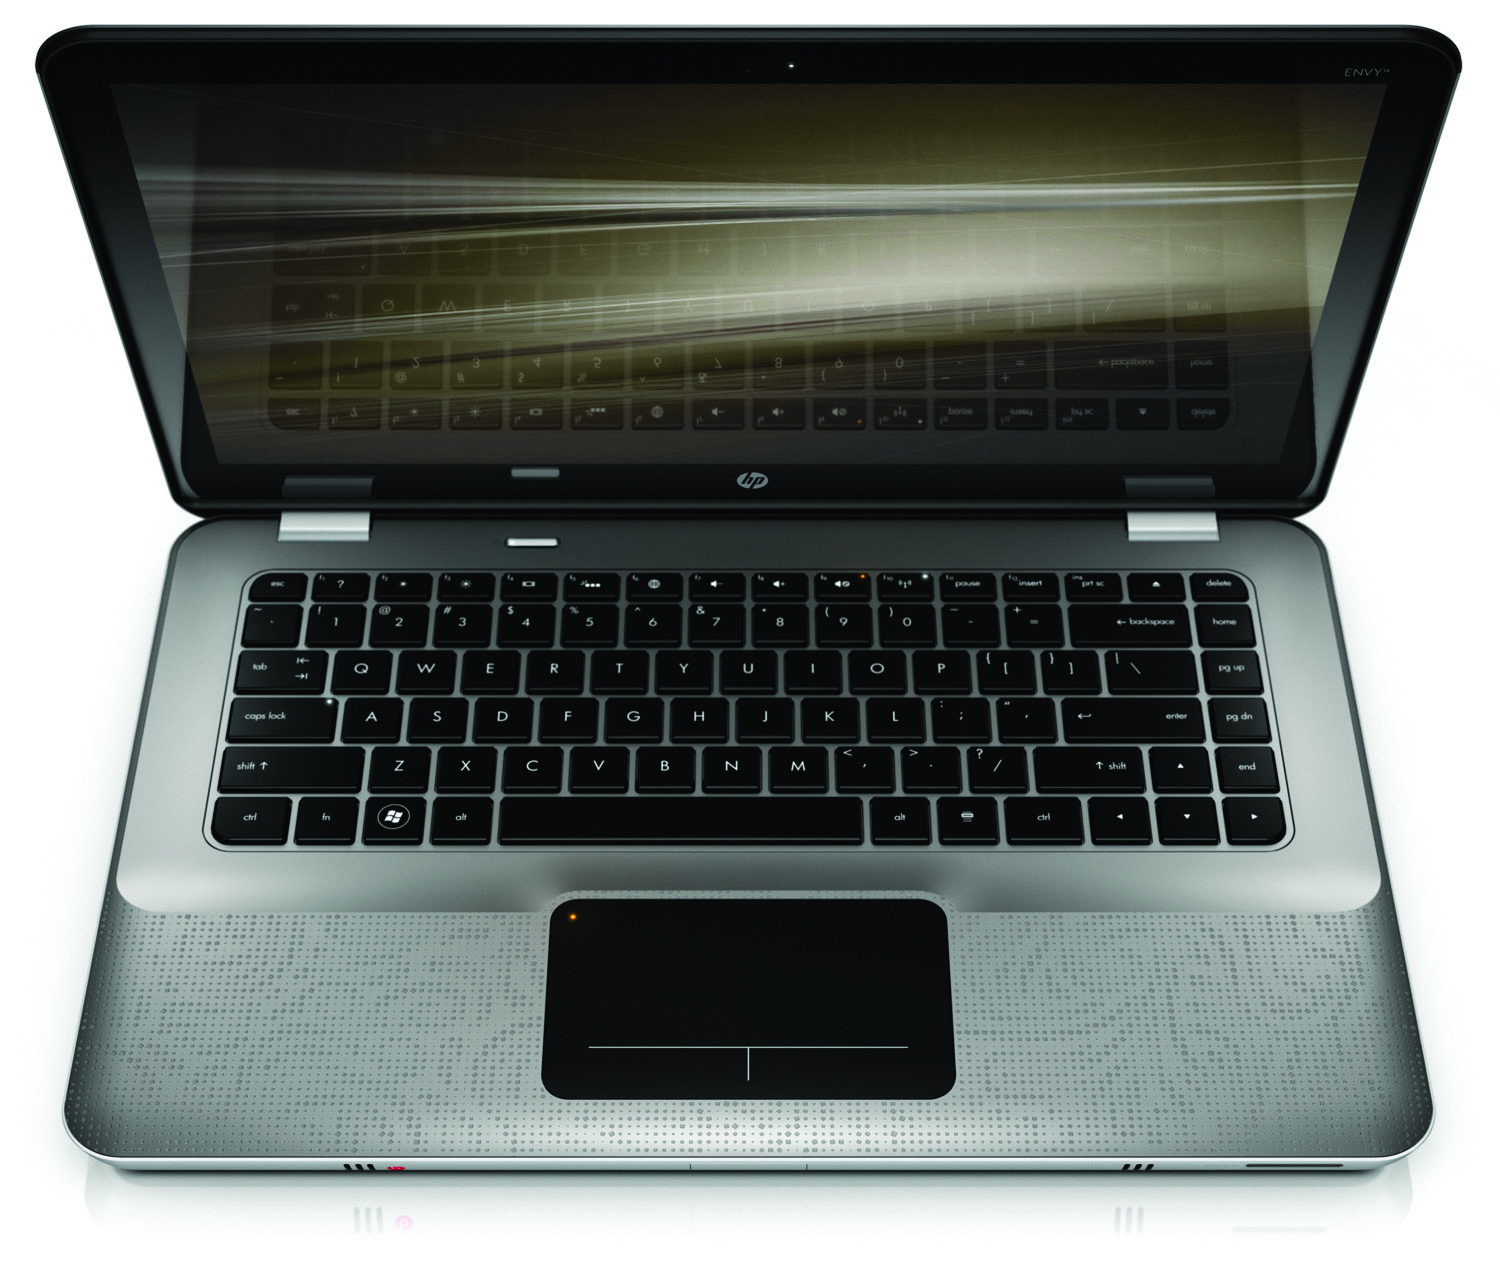 HP ENVY 14-2070NR NOTEBOOK WINDOWS 7 DRIVERS DOWNLOAD